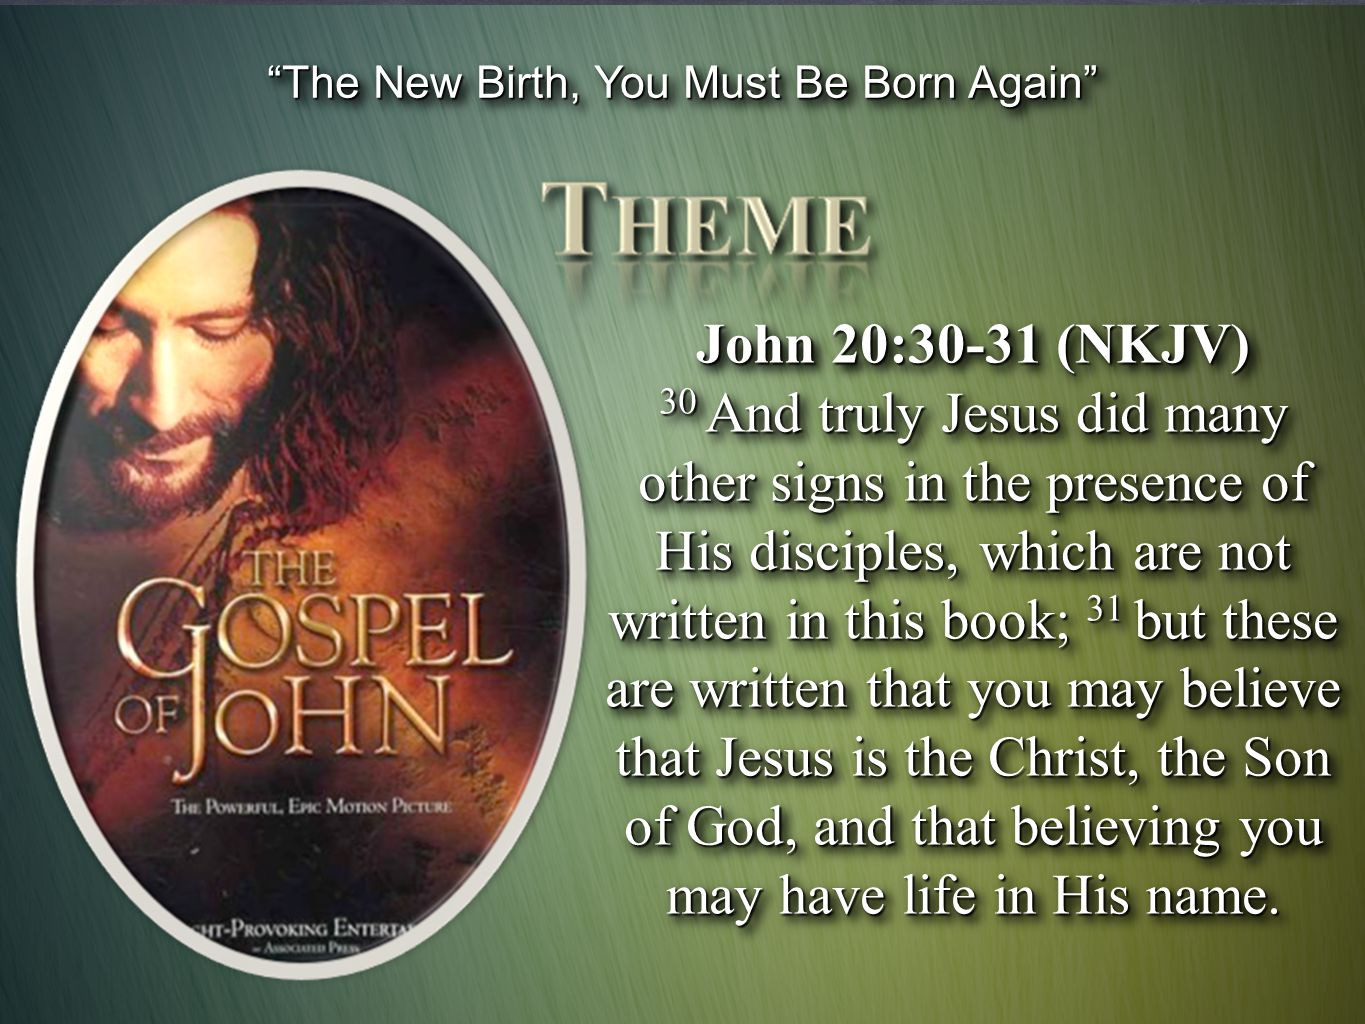 The New Birth, You Must Be Born Again It refers to an act, and that act can only be water baptism and the giving of the Spirit which that conveys Barnabas Lindars - (New Century Bible Commentary: The Gospel of John pg.